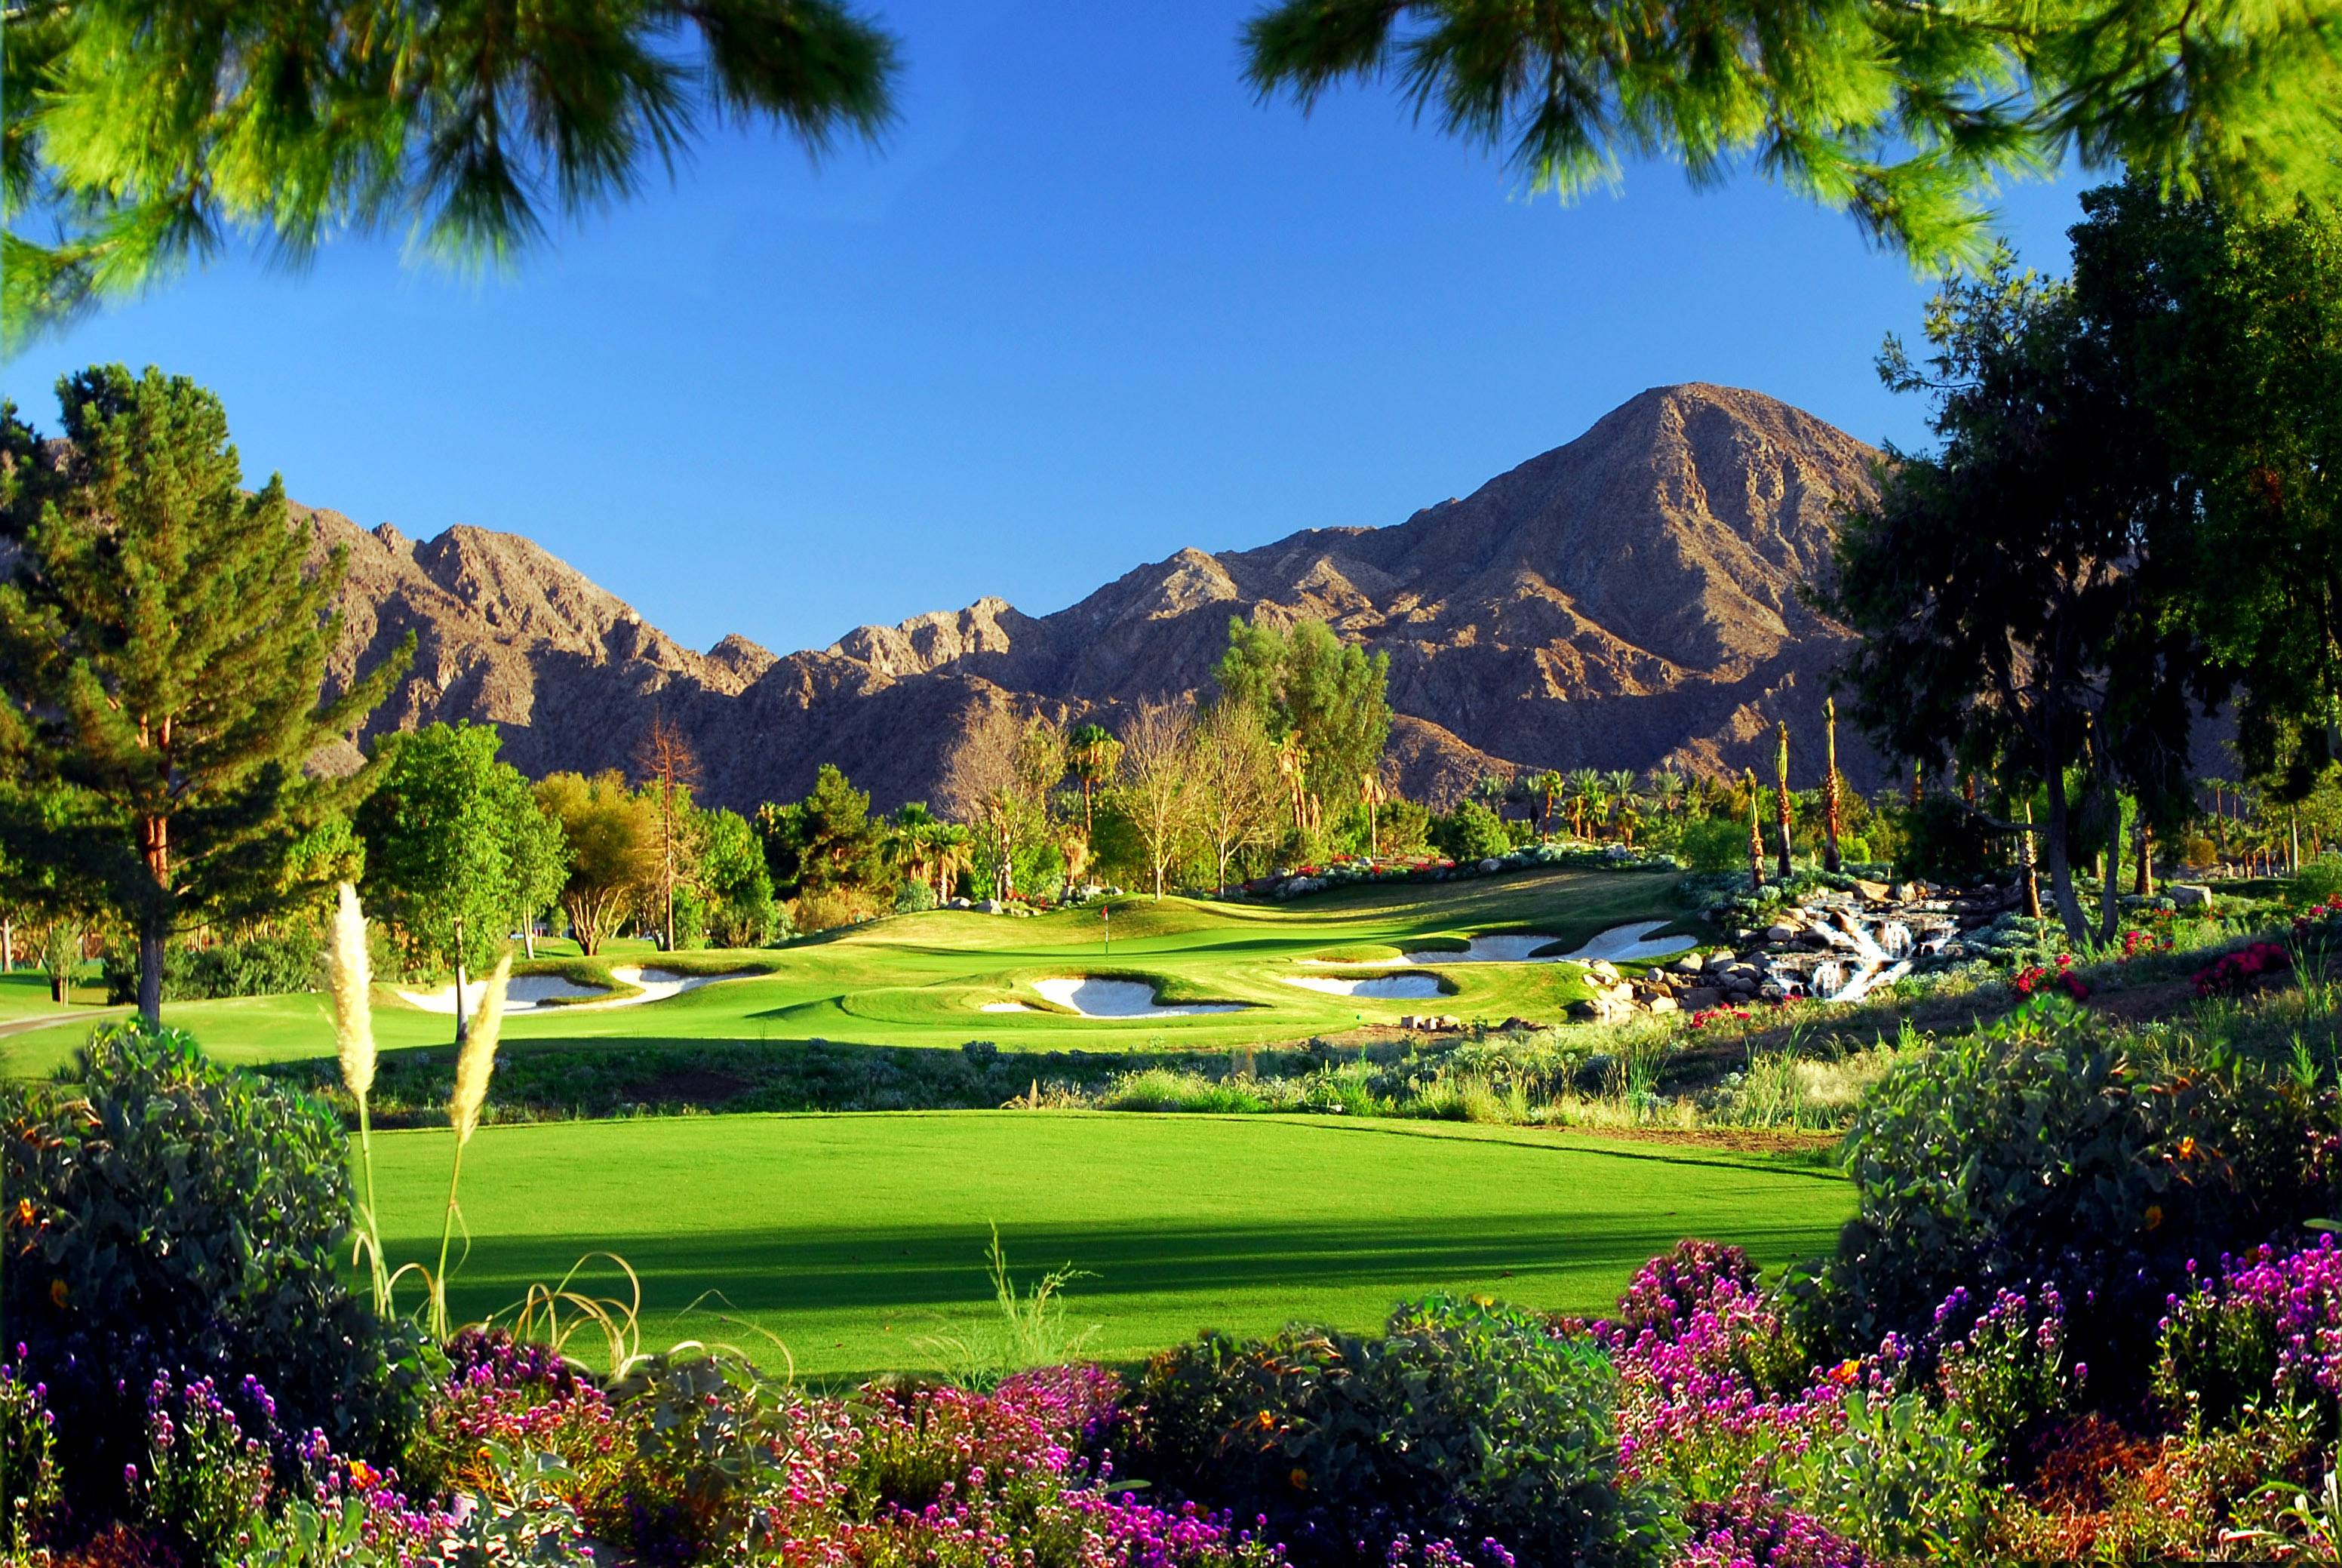 Golf Course Wallpapers 3104x2078